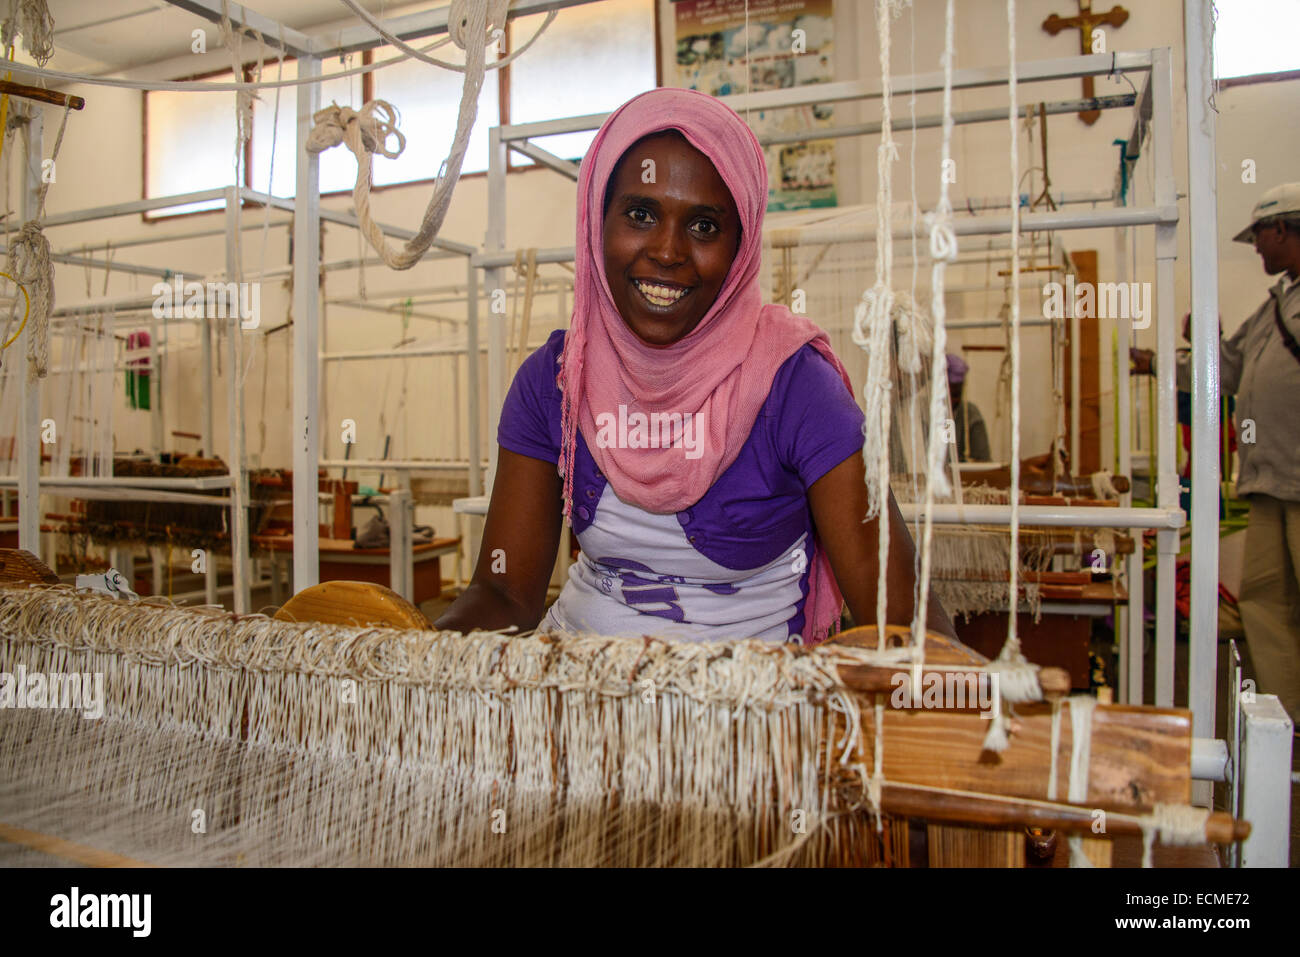 Friendly woman working on a hand weaving loom in a social project, Eritrea - Stock Image